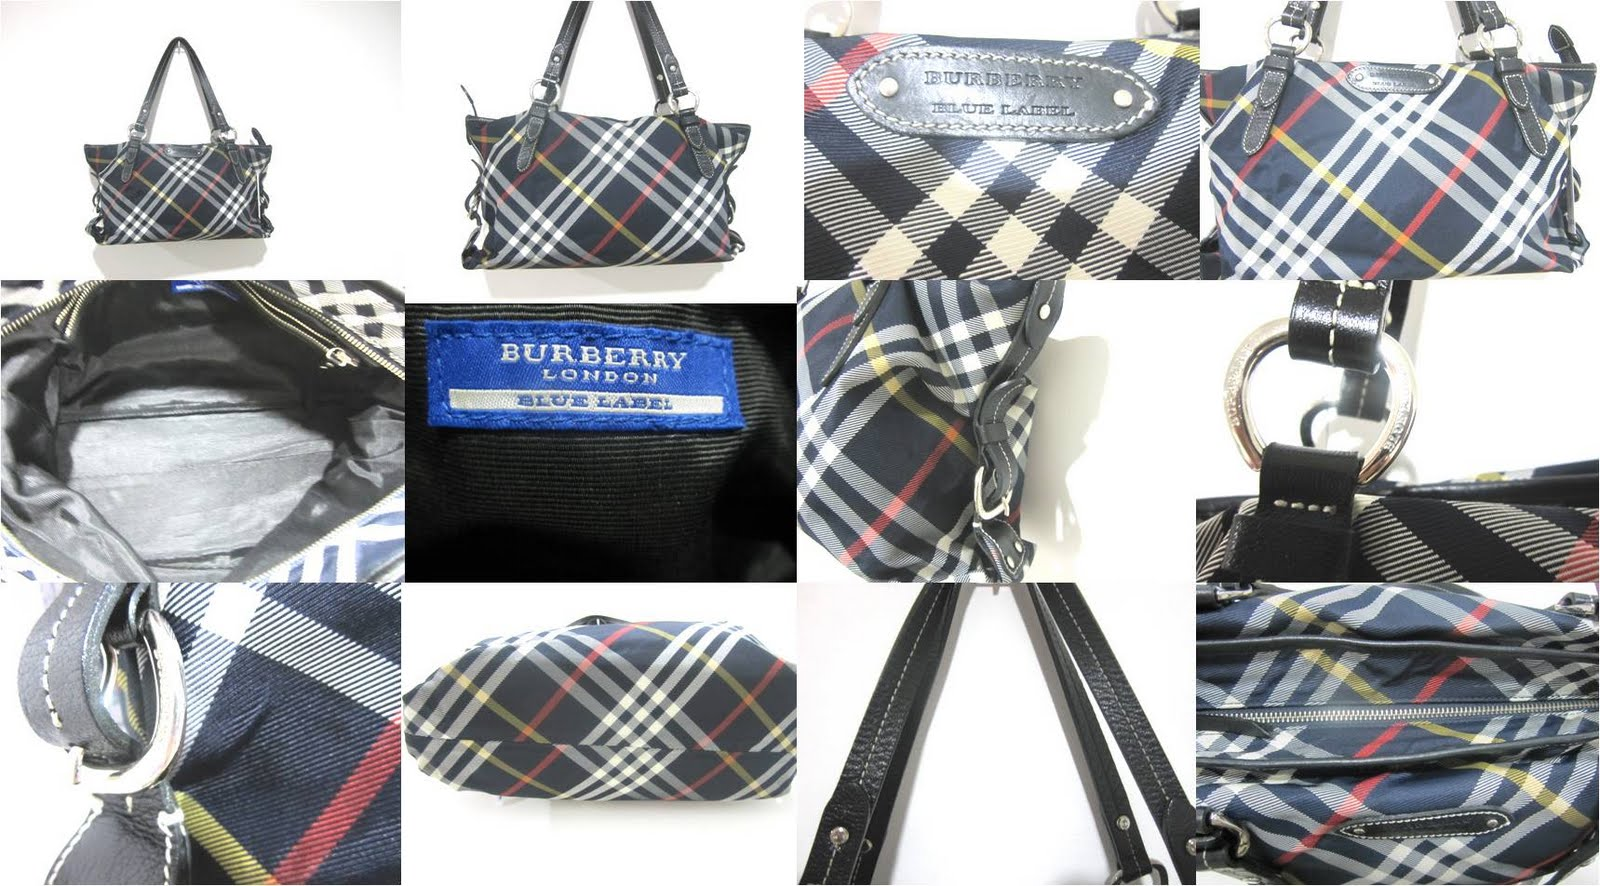 3282656b19a058 BURBERRY BLUE LABEL BLACK CHECKERED TOTE (0611-10). SOLD Like Brand New!  Measurement: 36cm (l) x 23cm (h) x 15cm (w) NOW ON SALE RM1100! Previously  RM1250